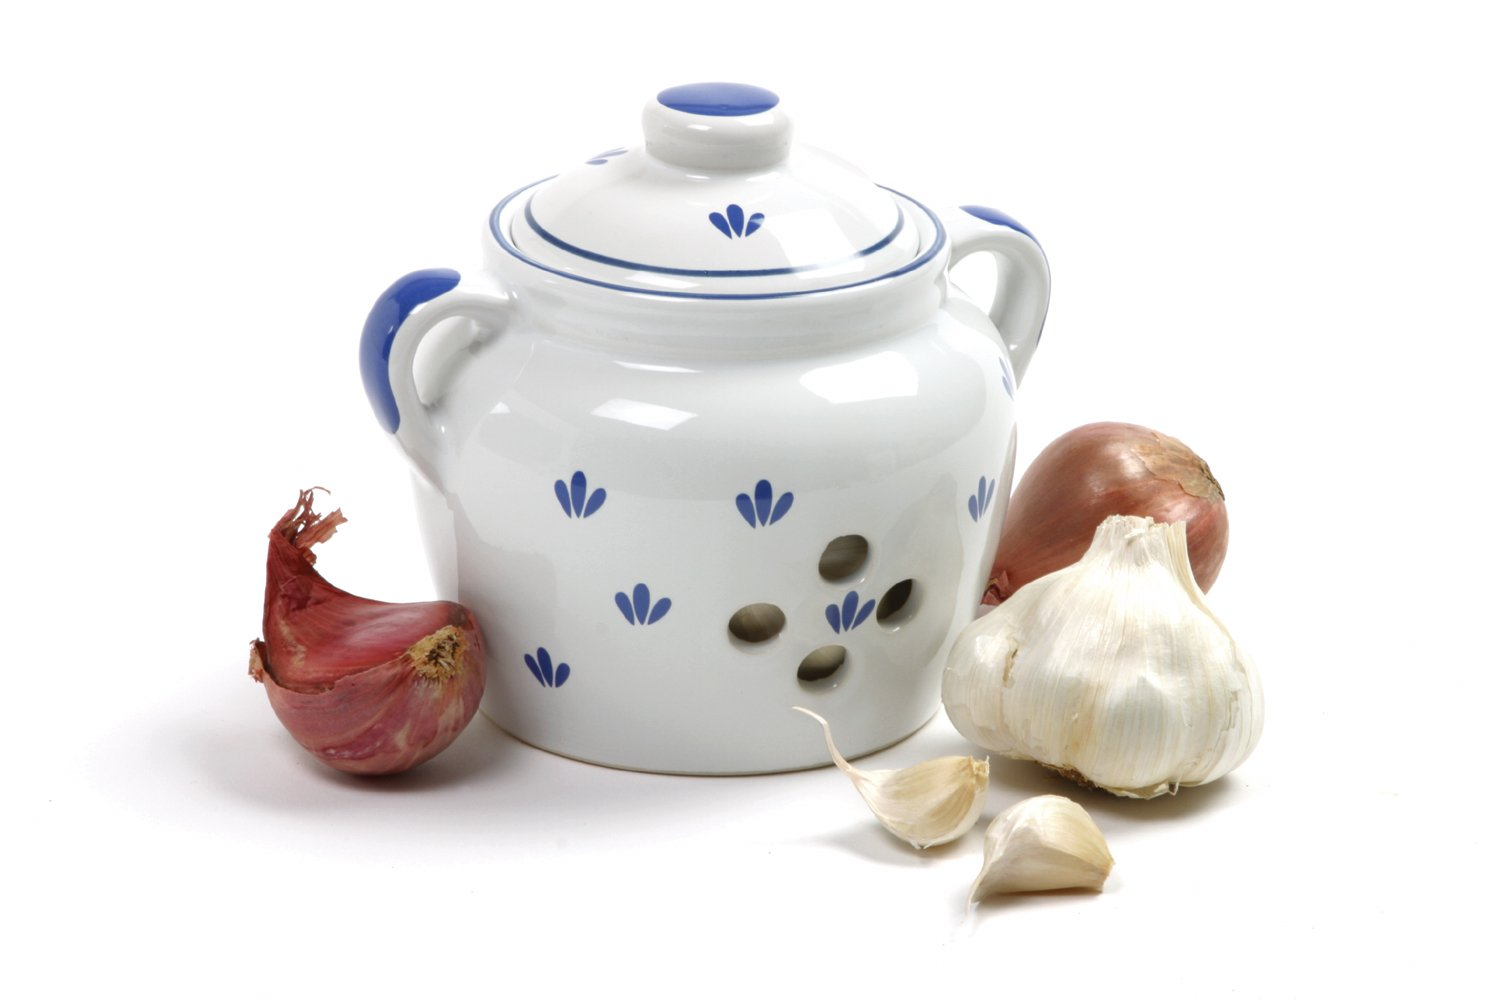 Norpro 250 5-Inch Ceramic Garlic Keeper